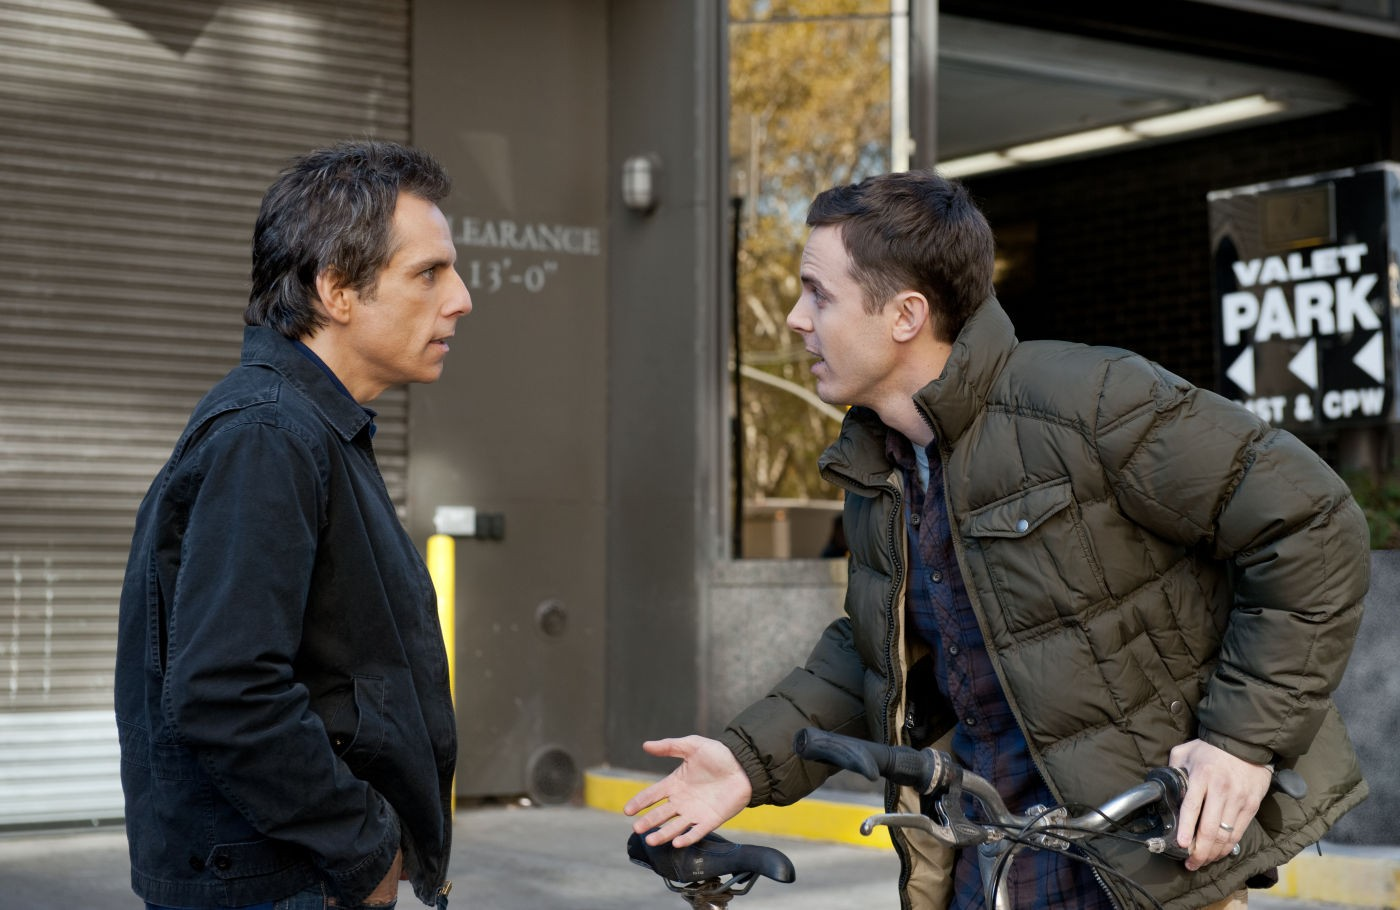 Ben Stiller stars as Josh Kovacs and Casey Affleck stars as Cole Howard in Universal Pictures' Tower Heist (2011)